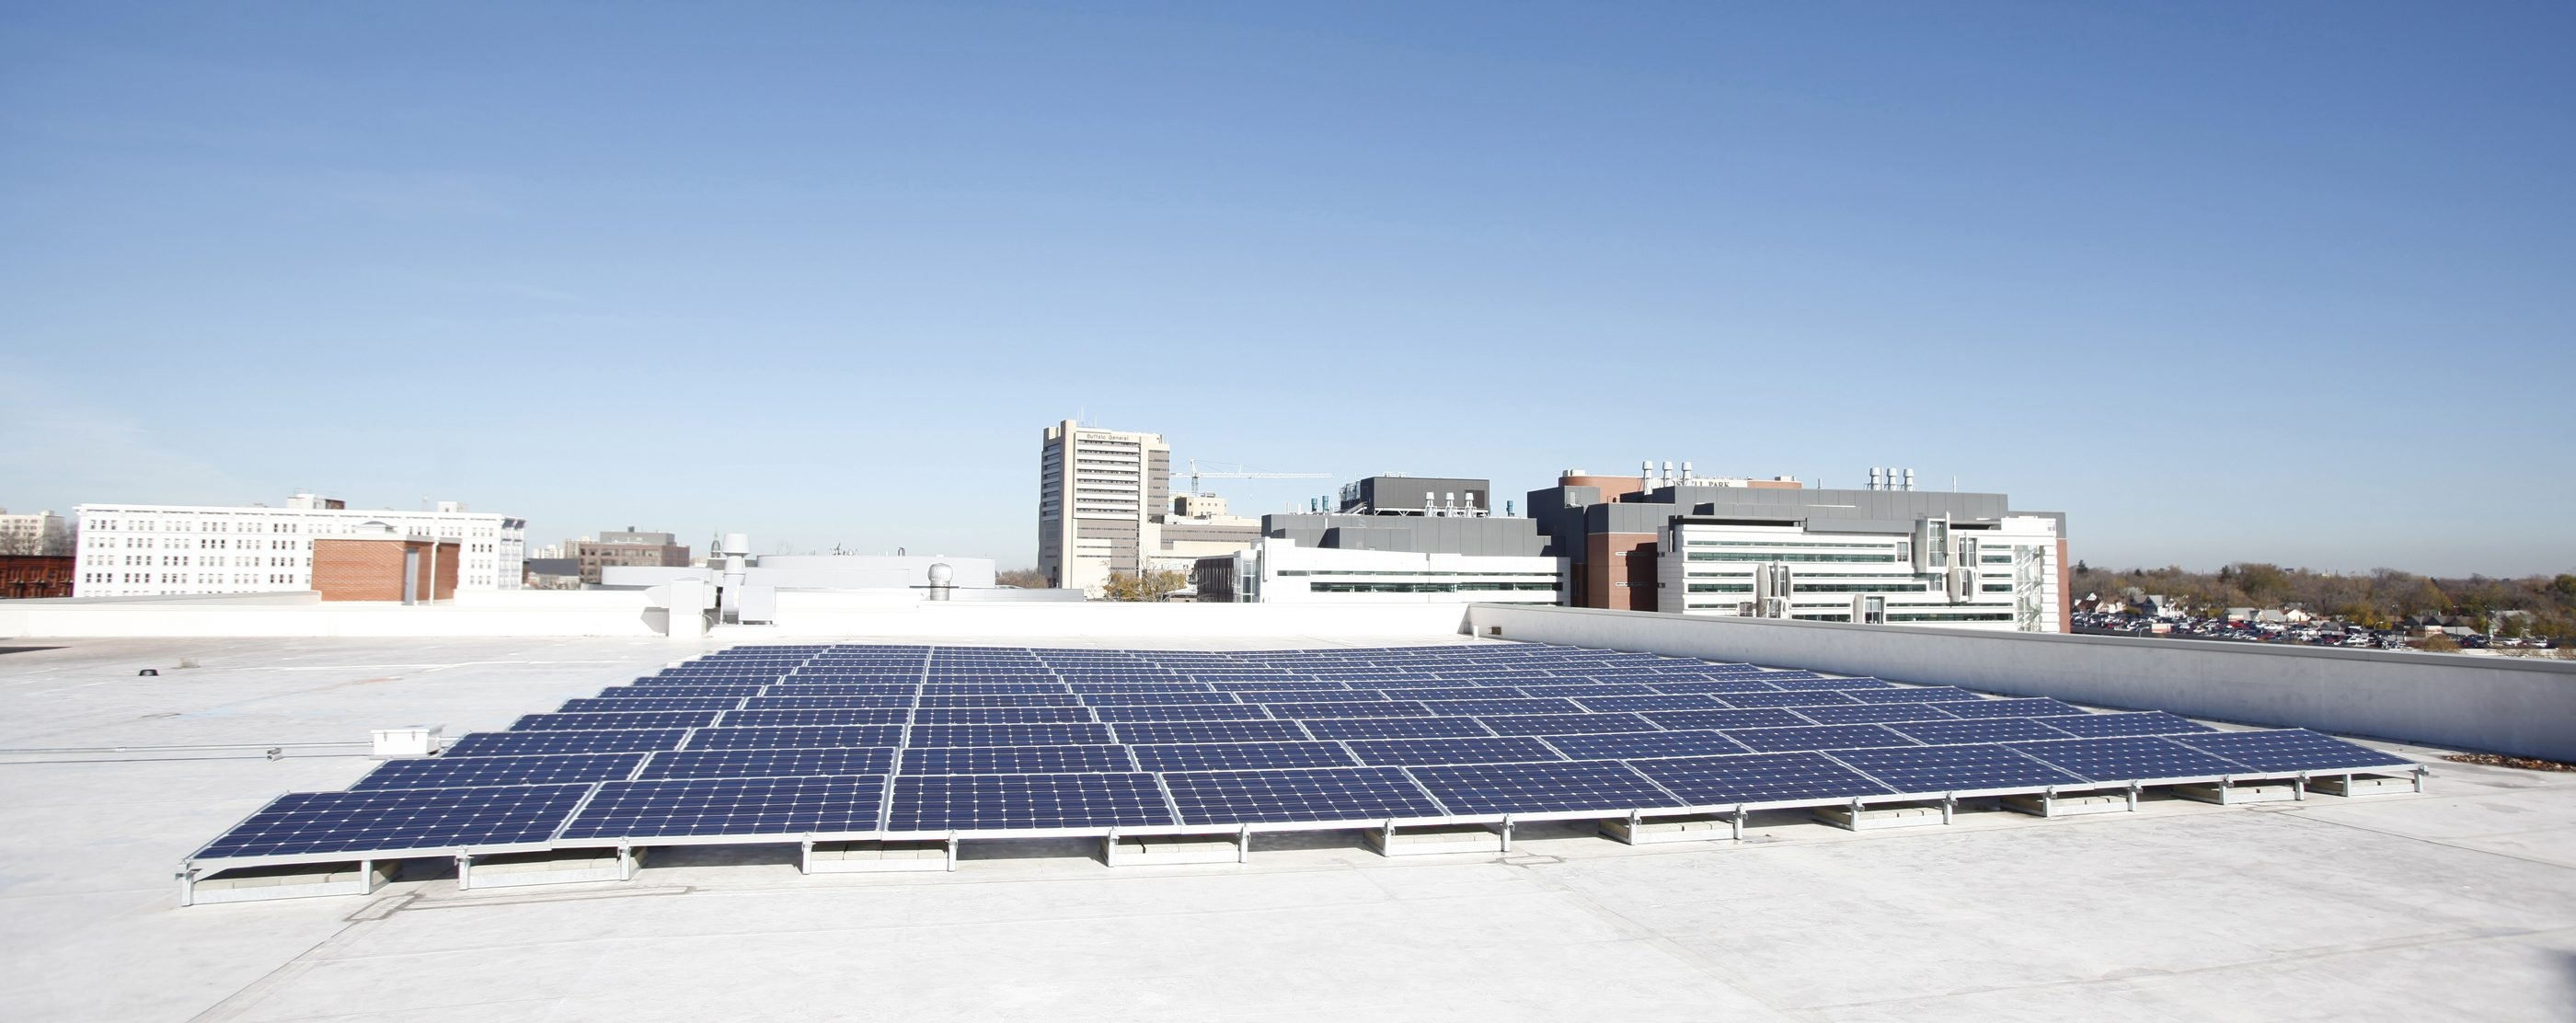 The Buffalo Niagara Medical Campus, which installed solar panels on the roof of the Innovation Center, is a high-tech development project focused on promoting energy efficiency.